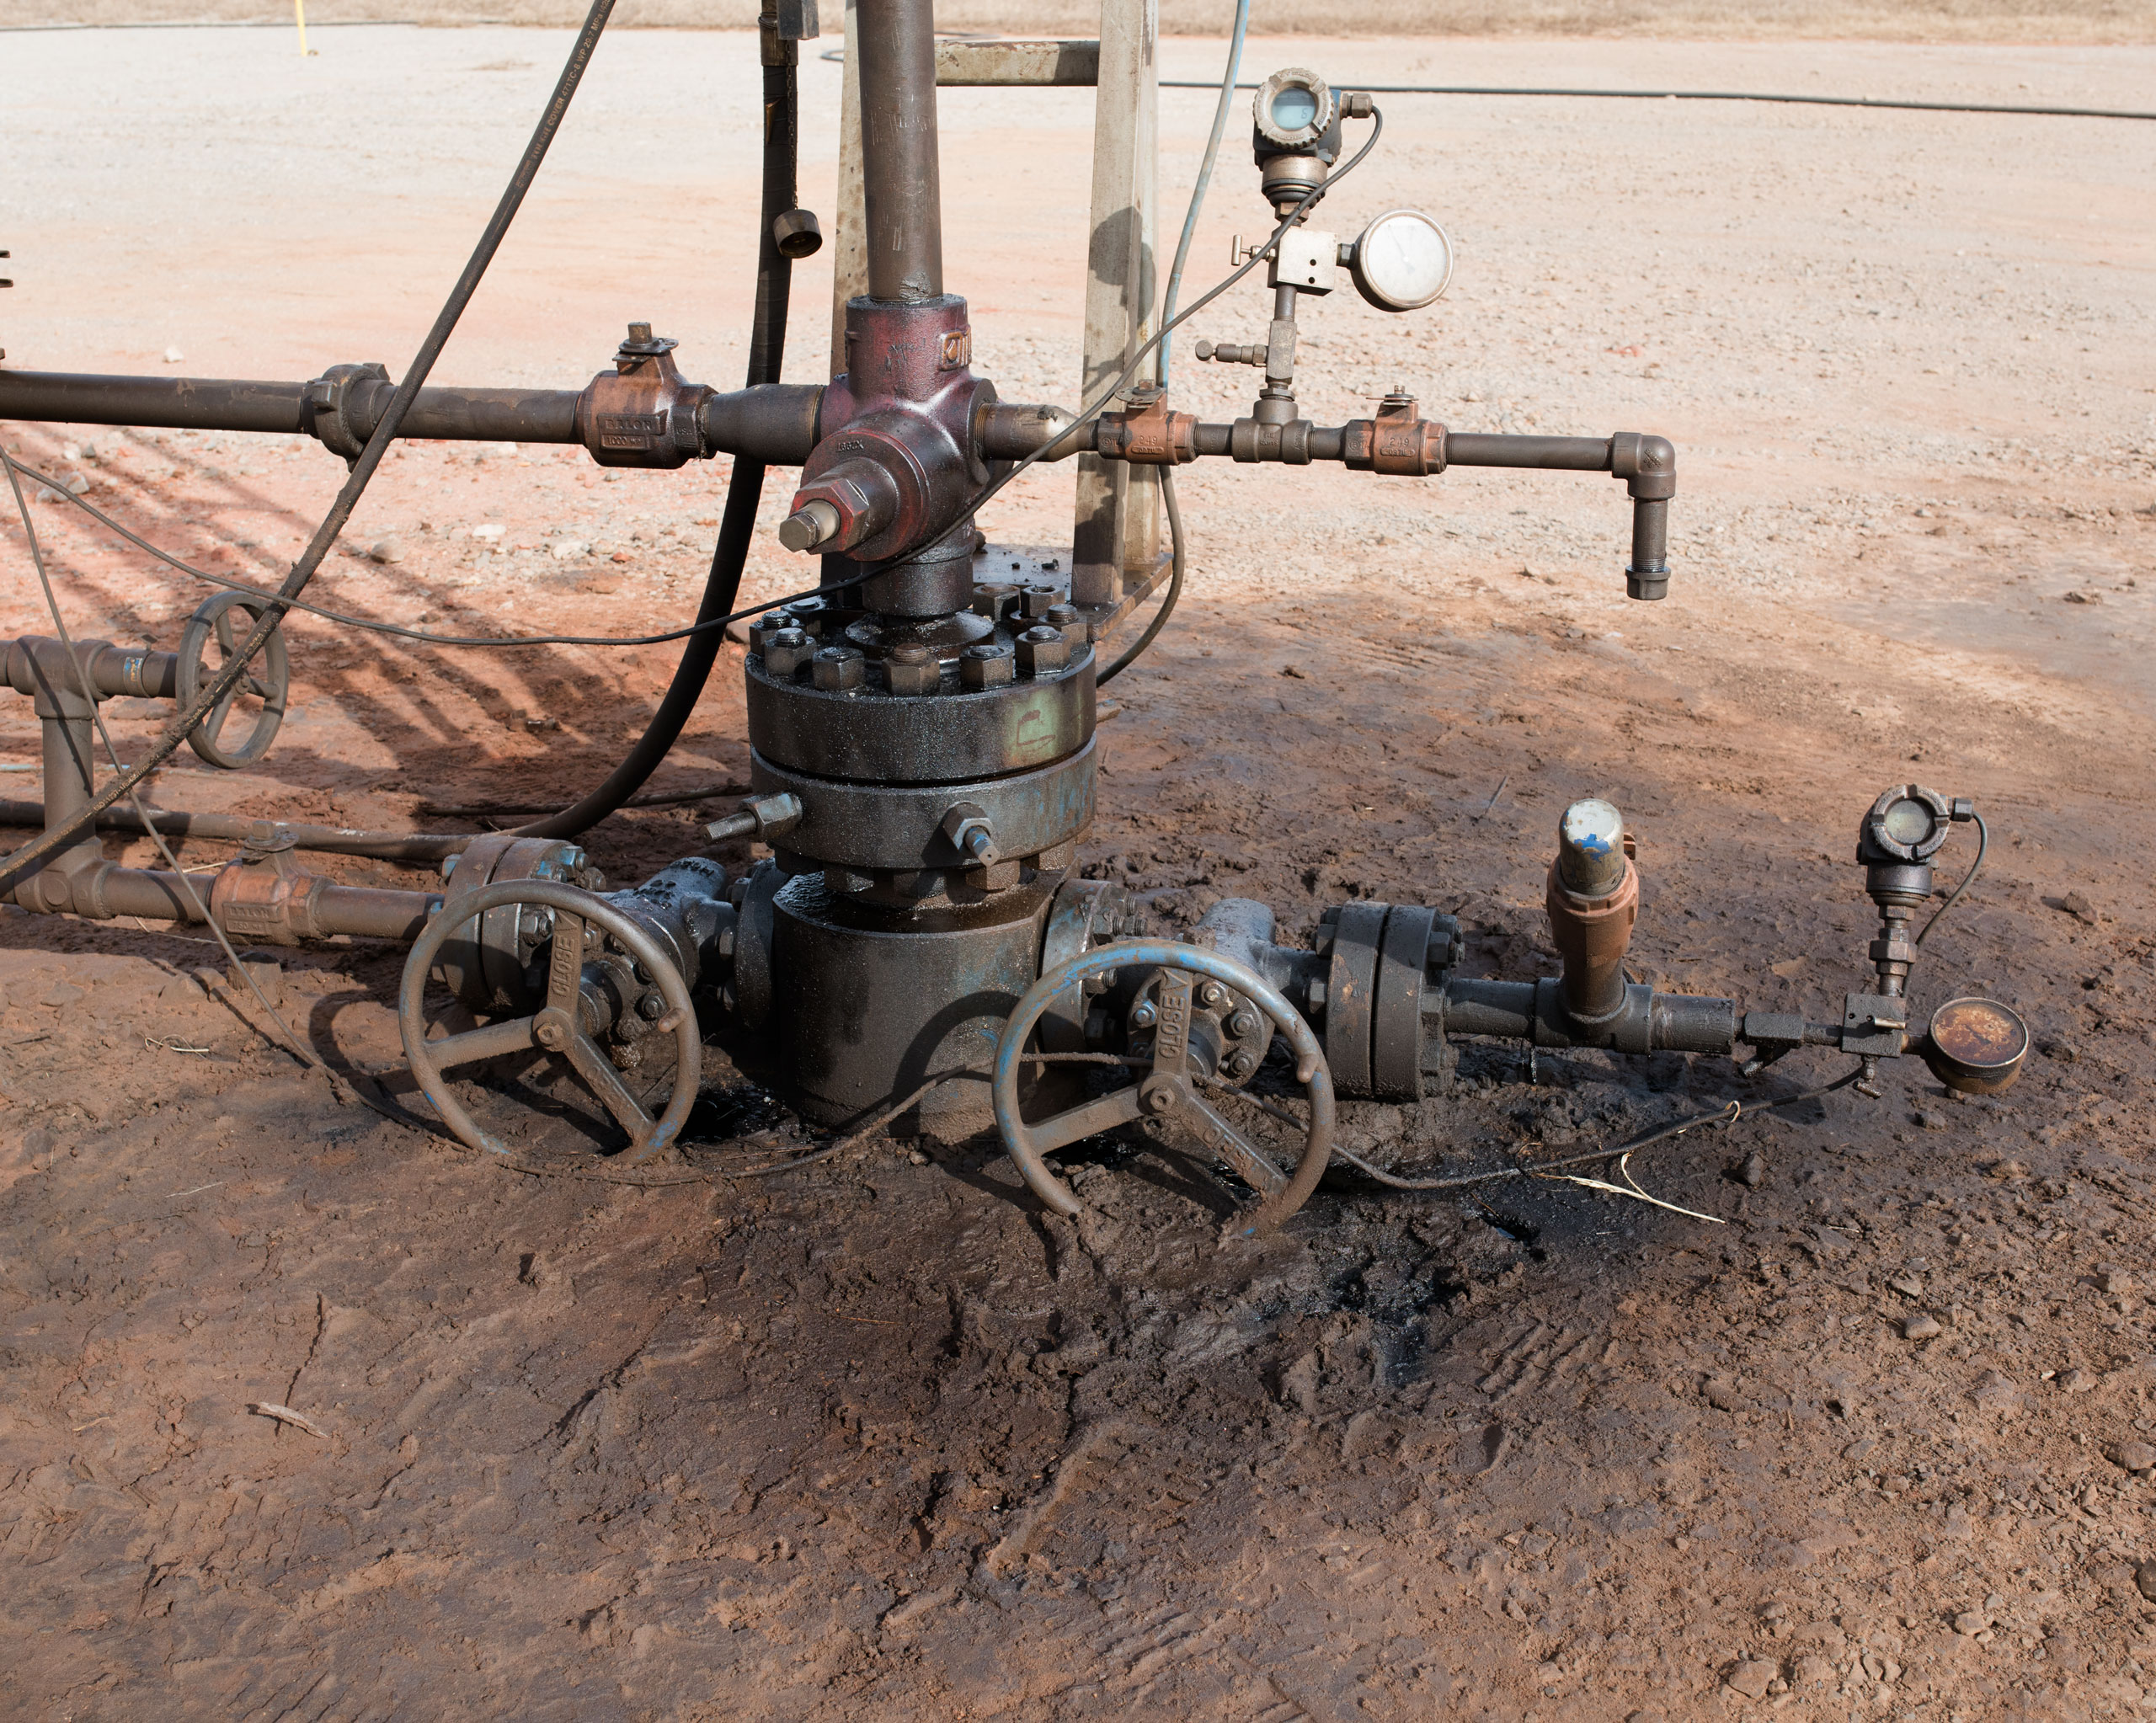 Ground pollution caused by an oil producing well, Coyle, OK